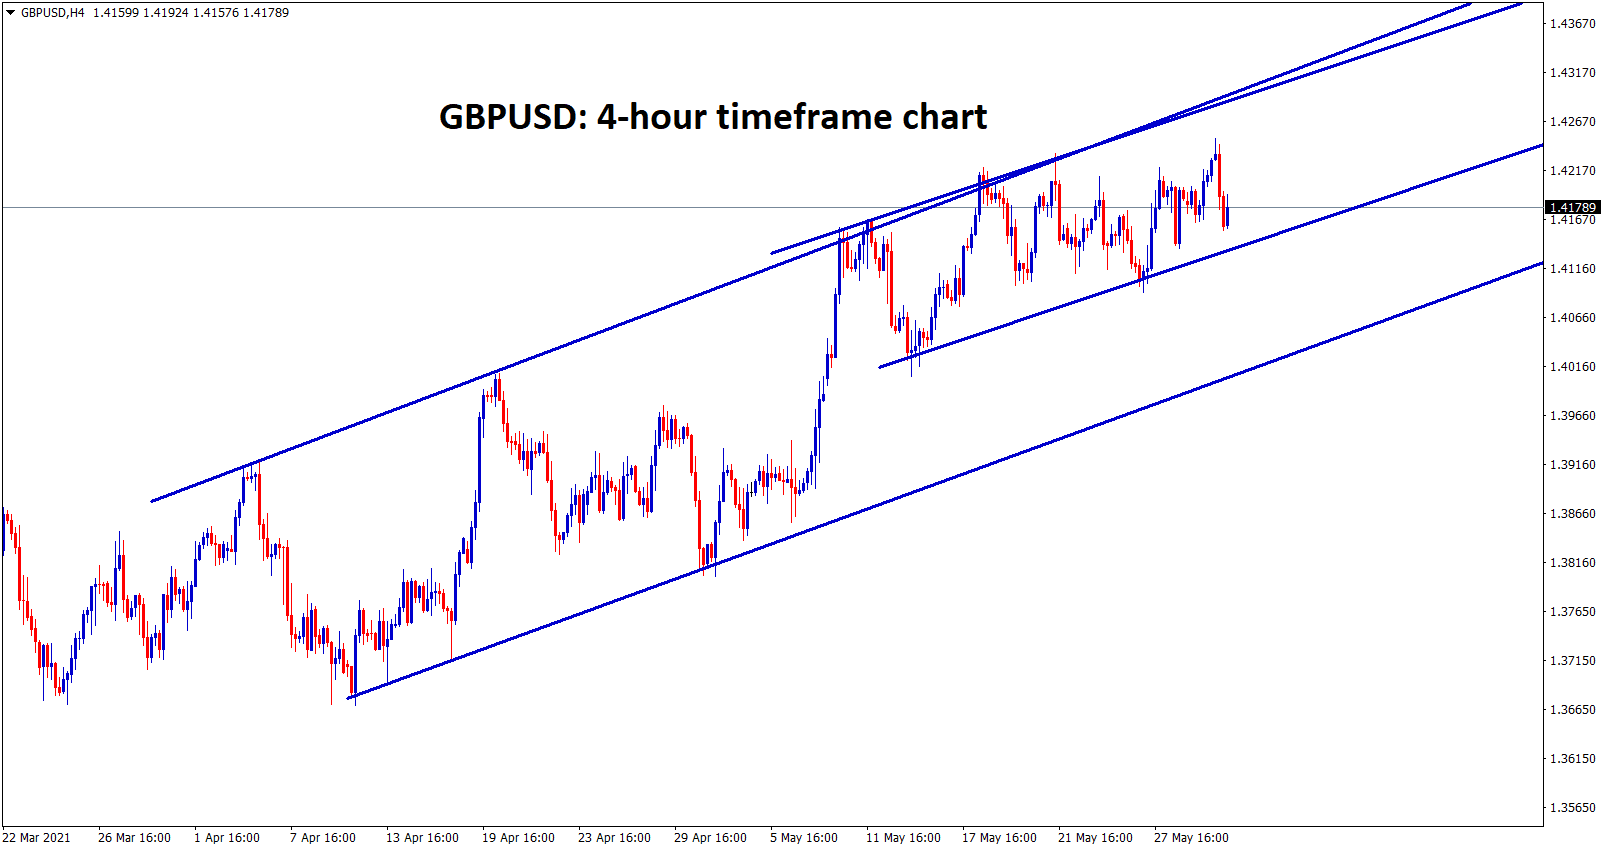 gbpusd ranging at the important resistance wait for breakout or reversal.